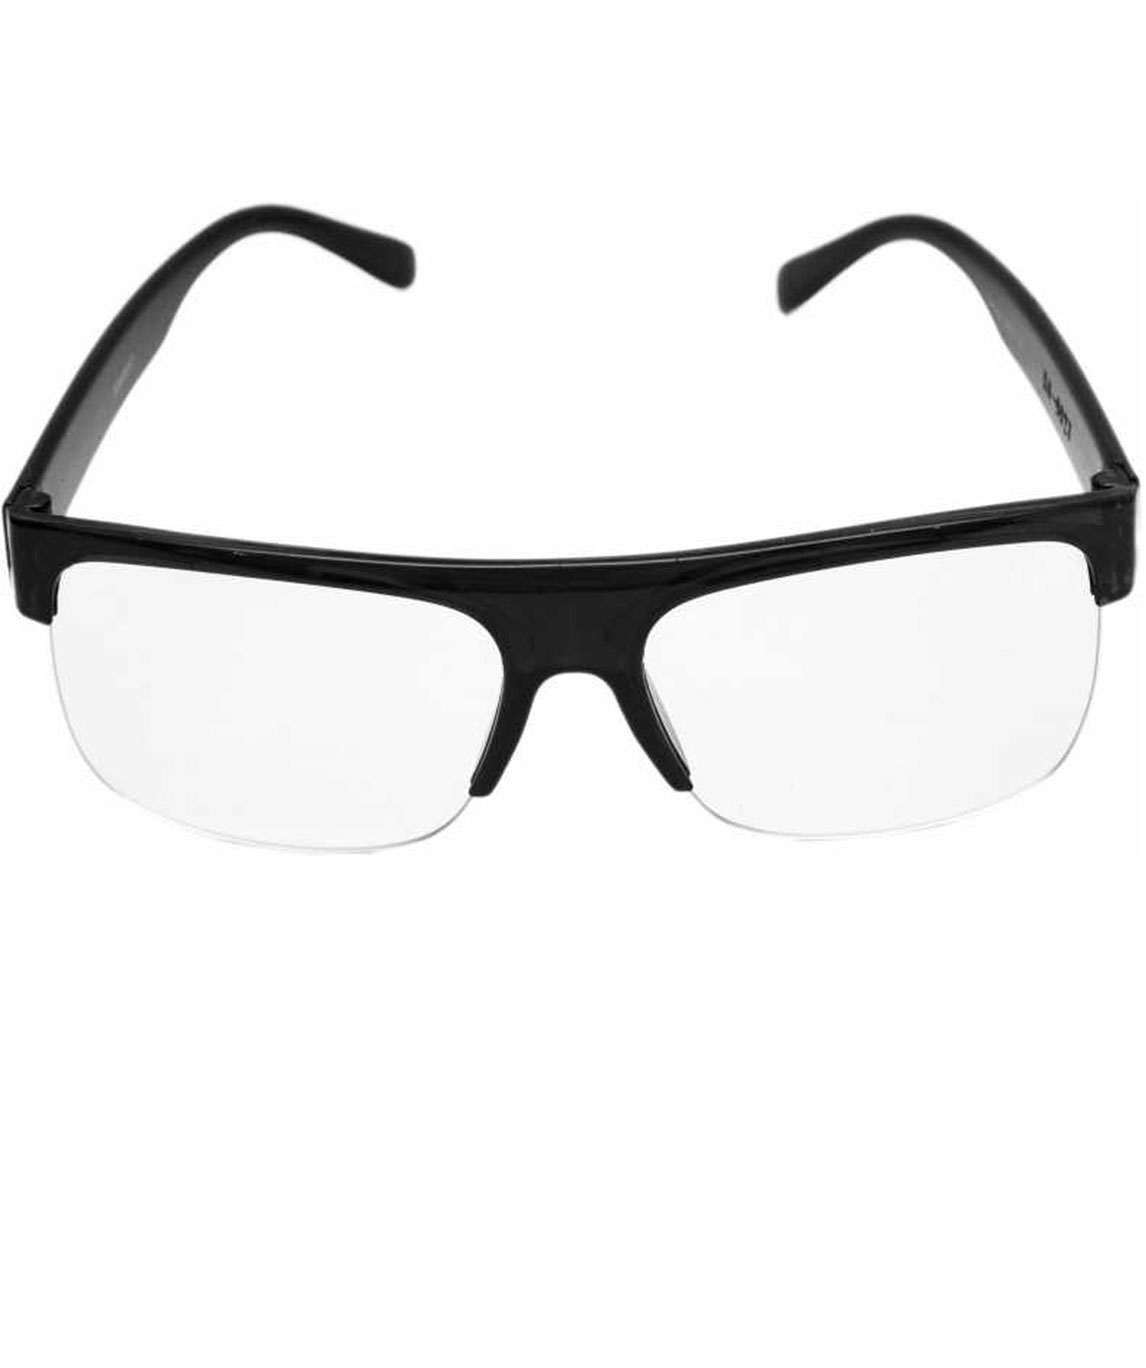 SPECTACLE SUNGLASSES (55) (CLEAR, BLACK)